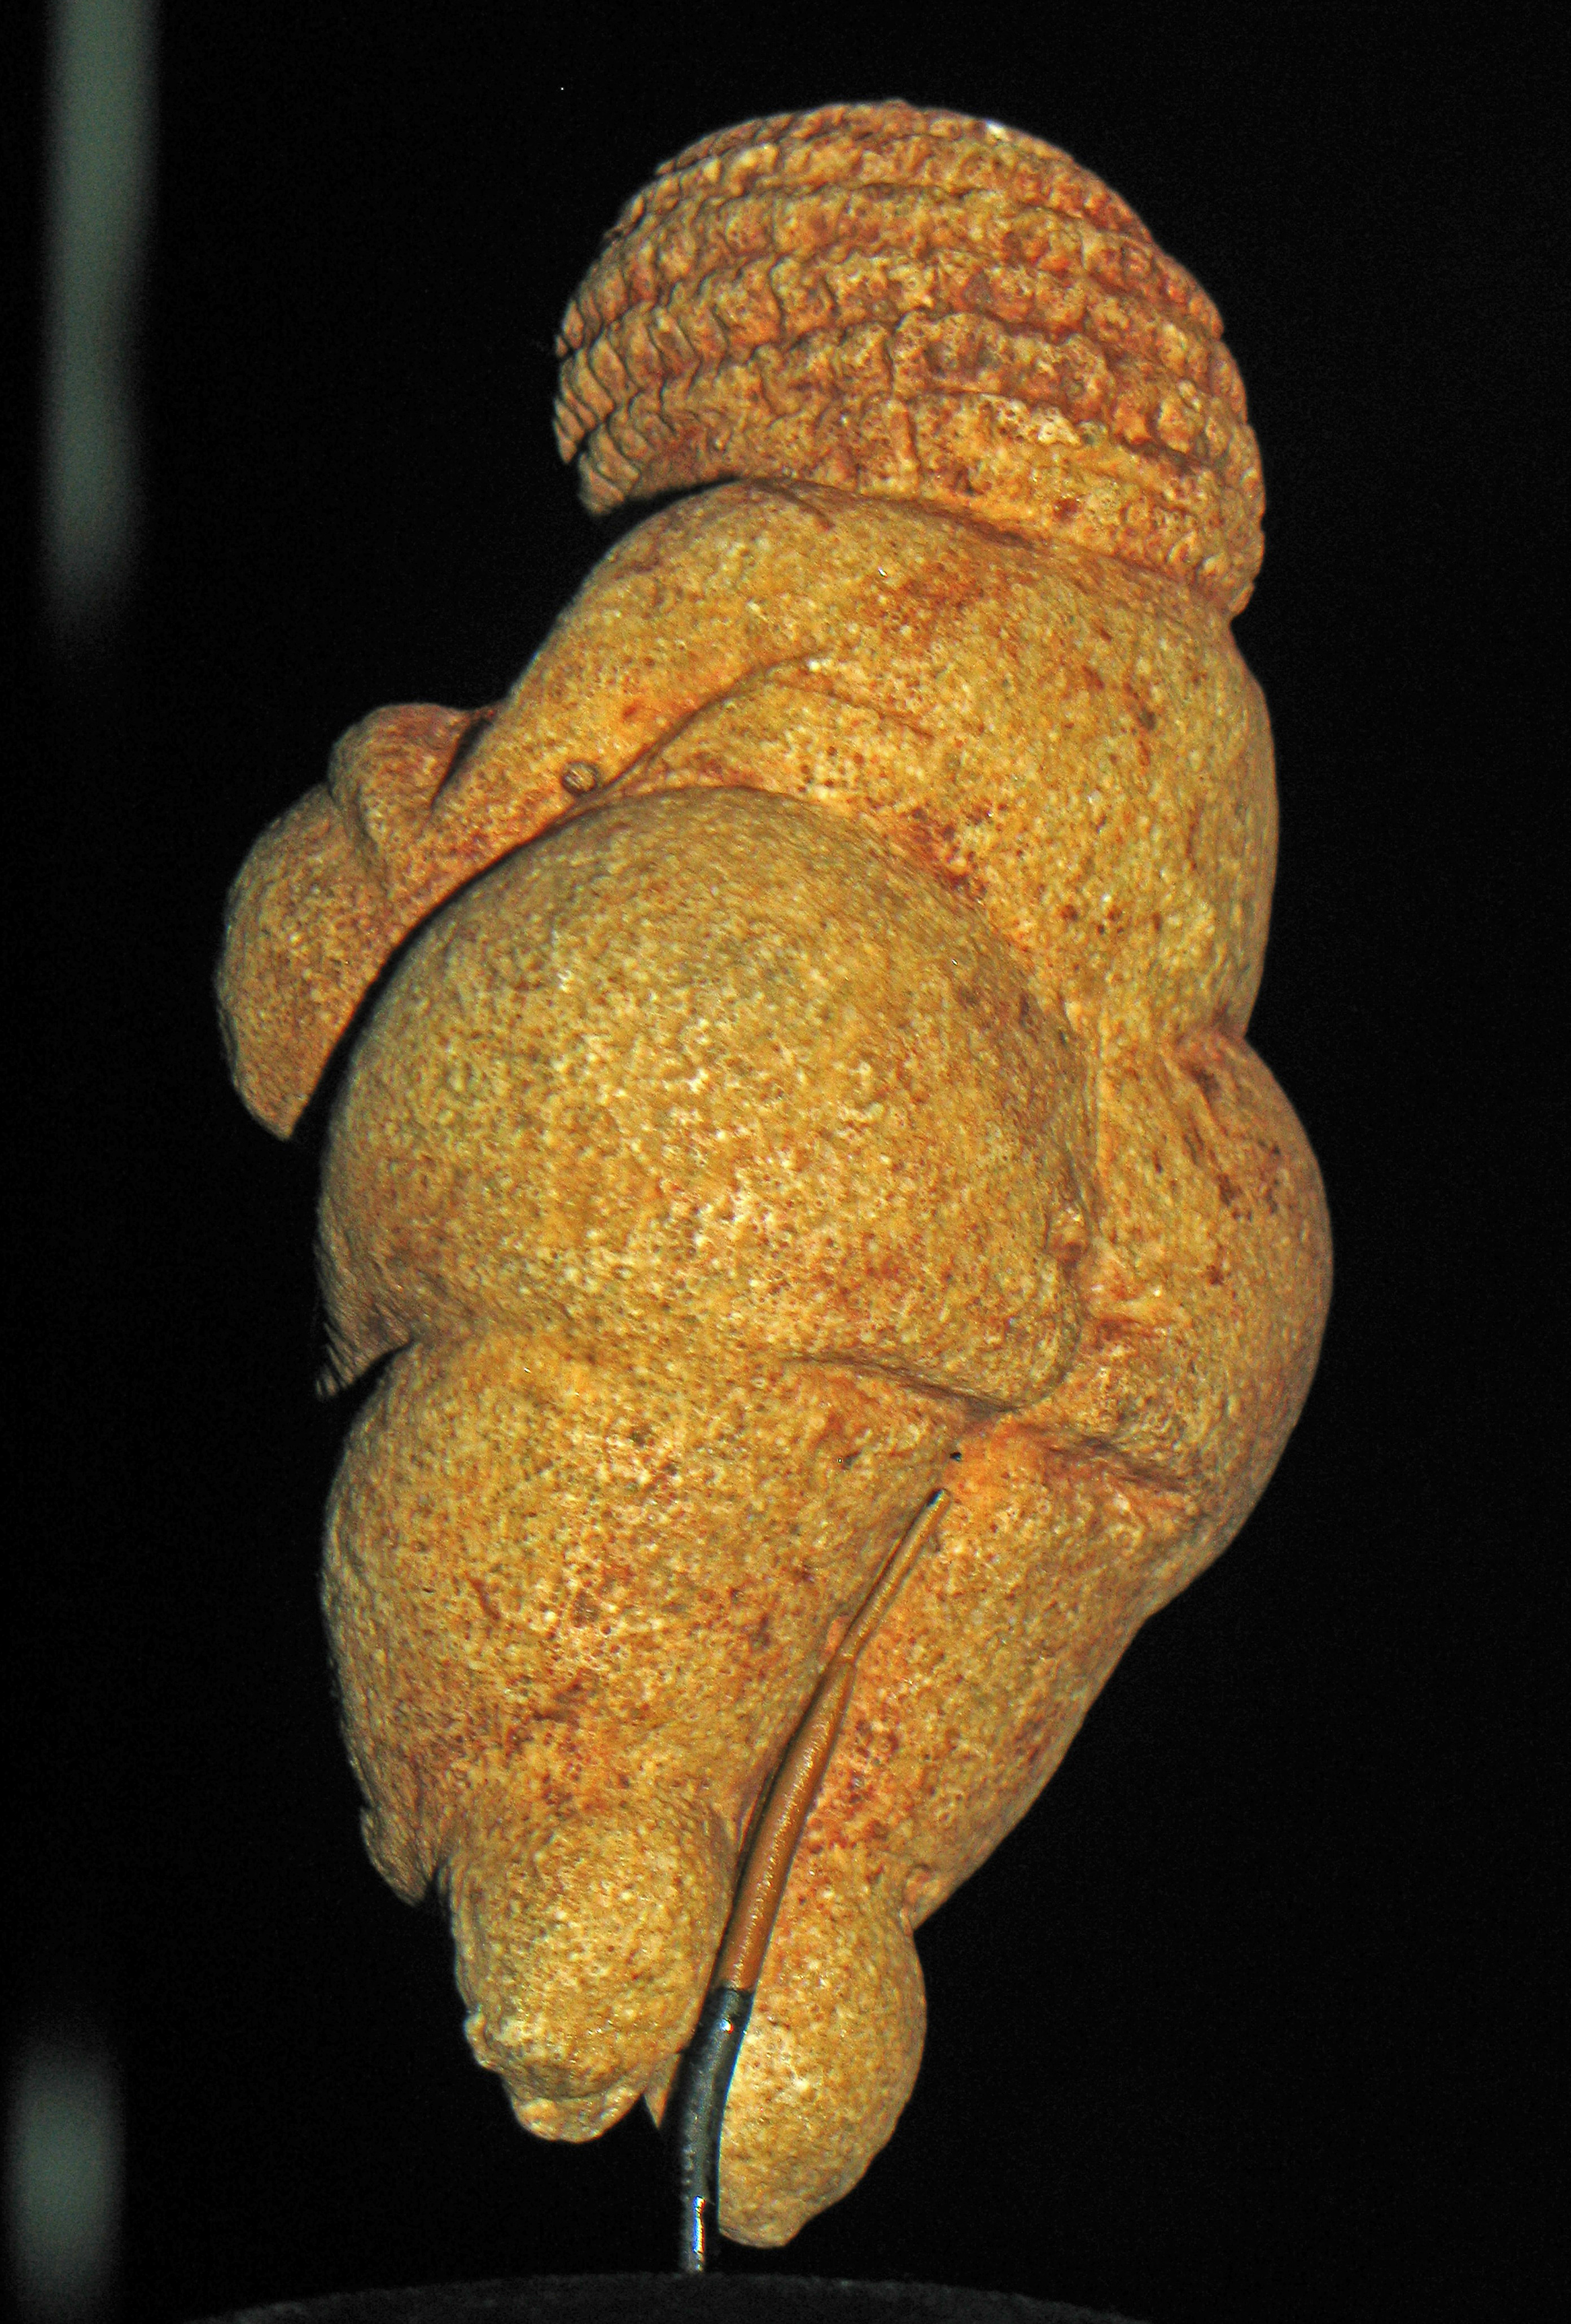 the venus of willendorf The venus of willendorf sculpture was made during the paleothic era between 24,000 and 22,000 bc it was discovered in an excavation near willendorf, austria by josef szombathy, hugo obermaier and josef baye.